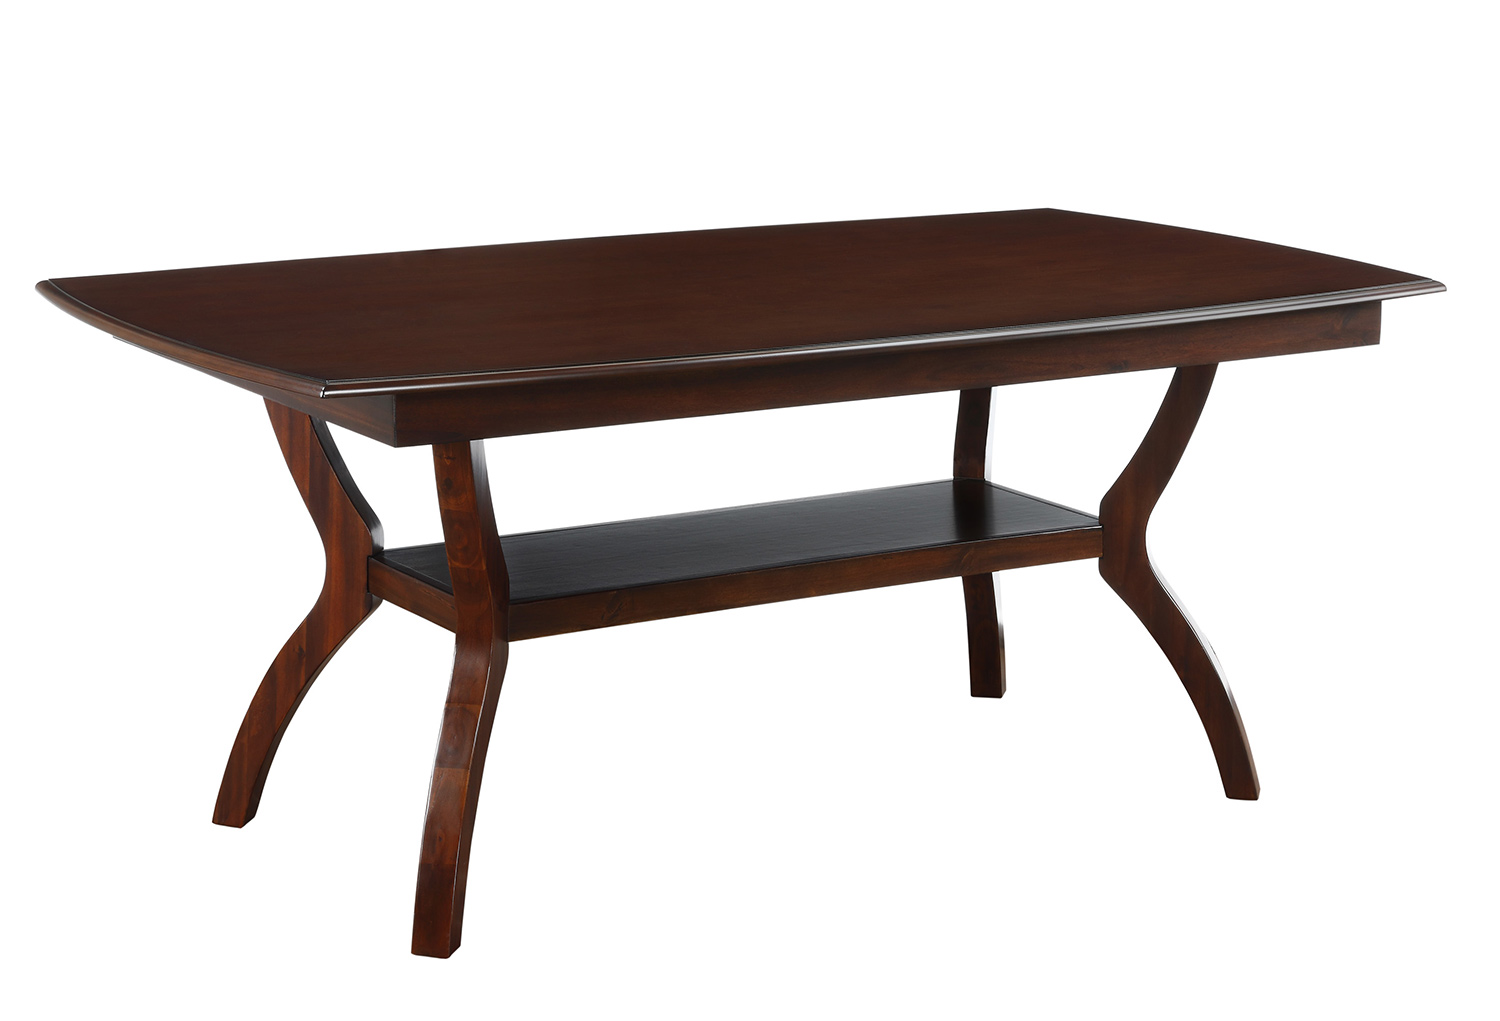 Homelegance Whitby Dining Table - Cherry